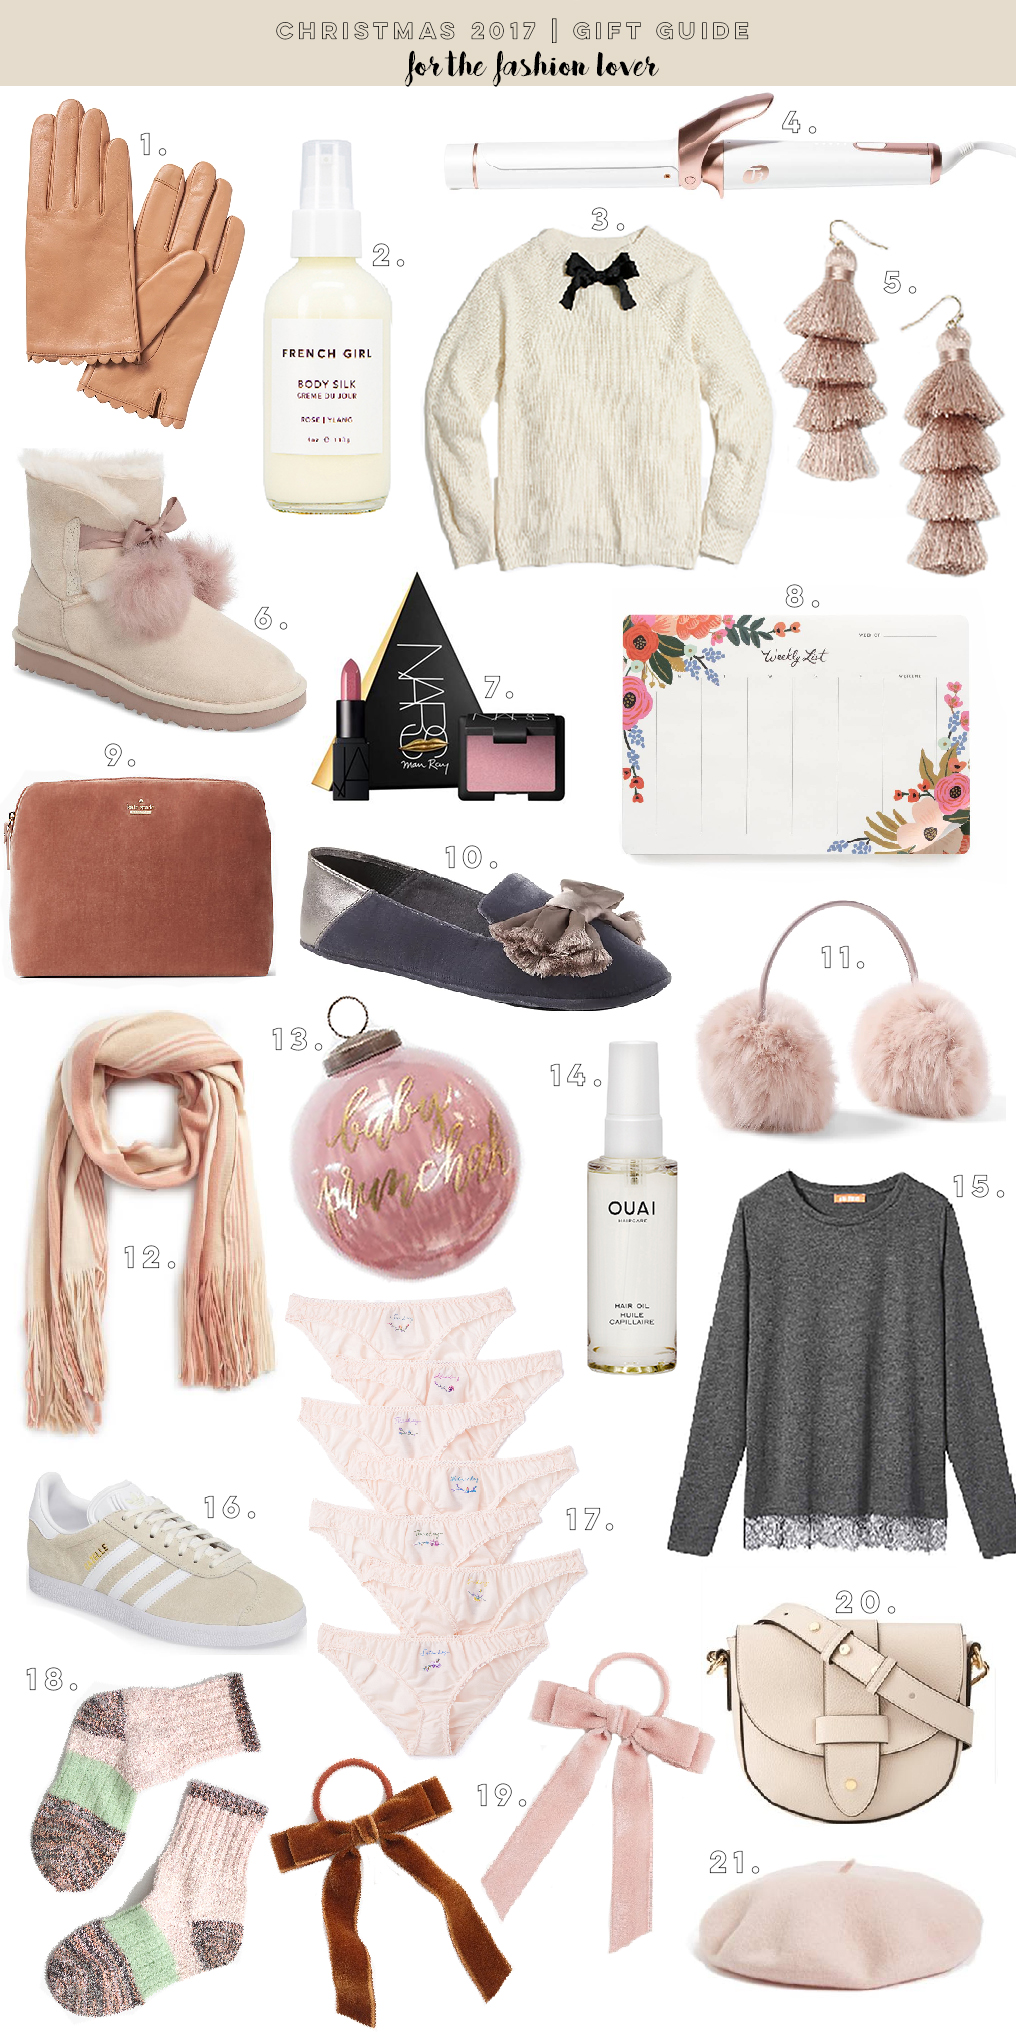 Christmas 2017 Gift Guide: For The Fashion Lover | The Blondielocks ...